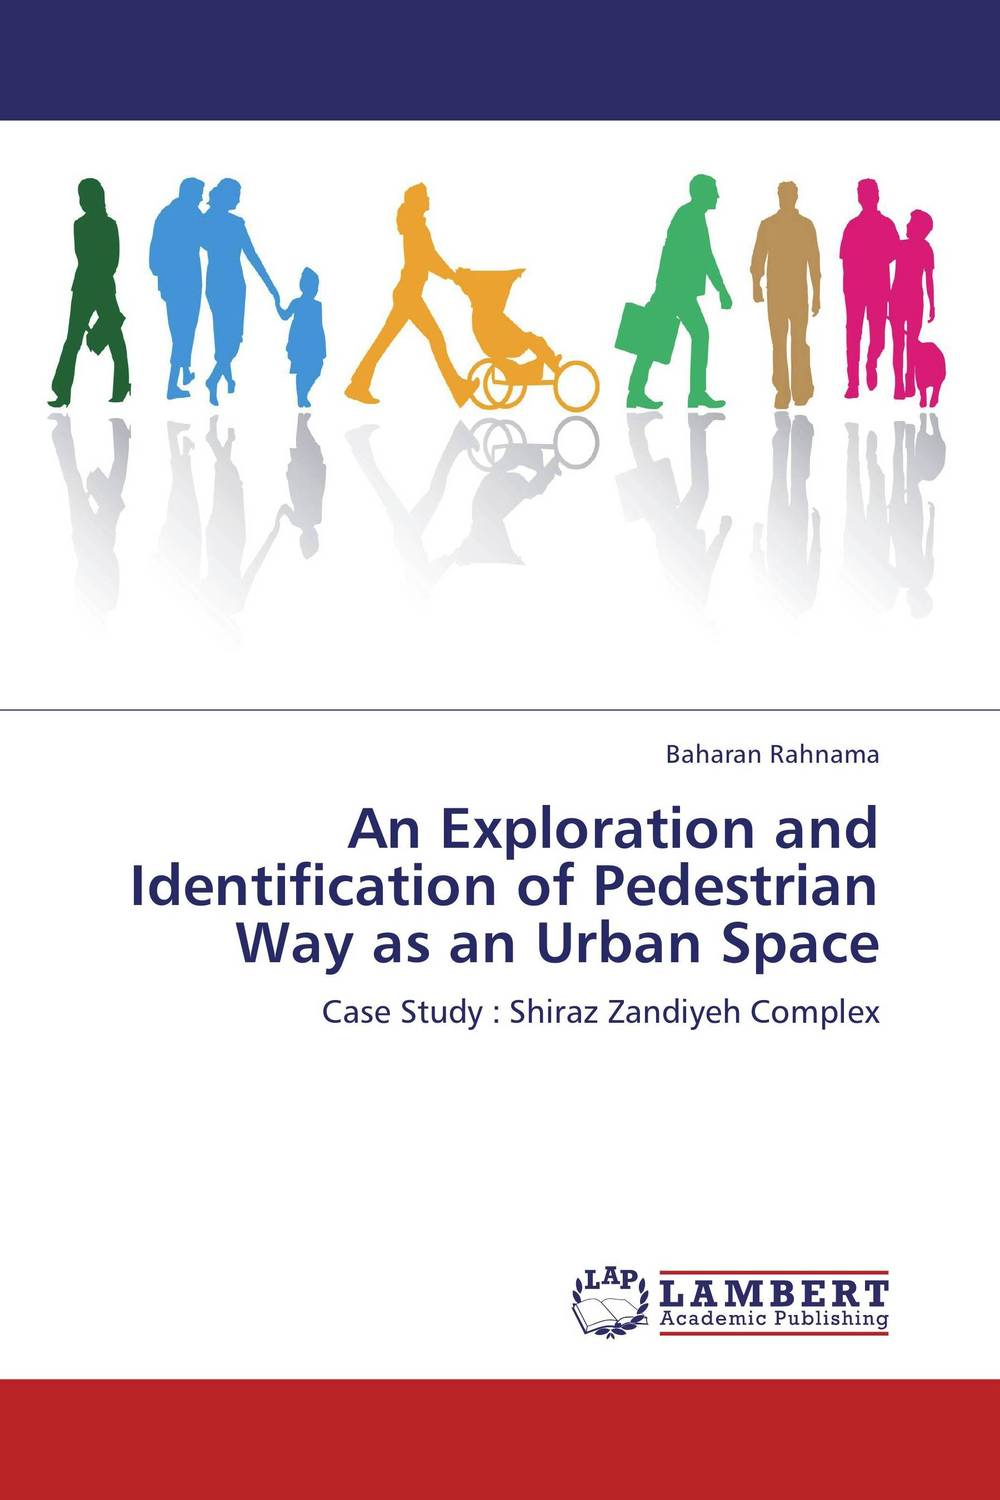 An Exploration and Identification of  Pedestrian Way as an Urban Space dialogue as a way of life